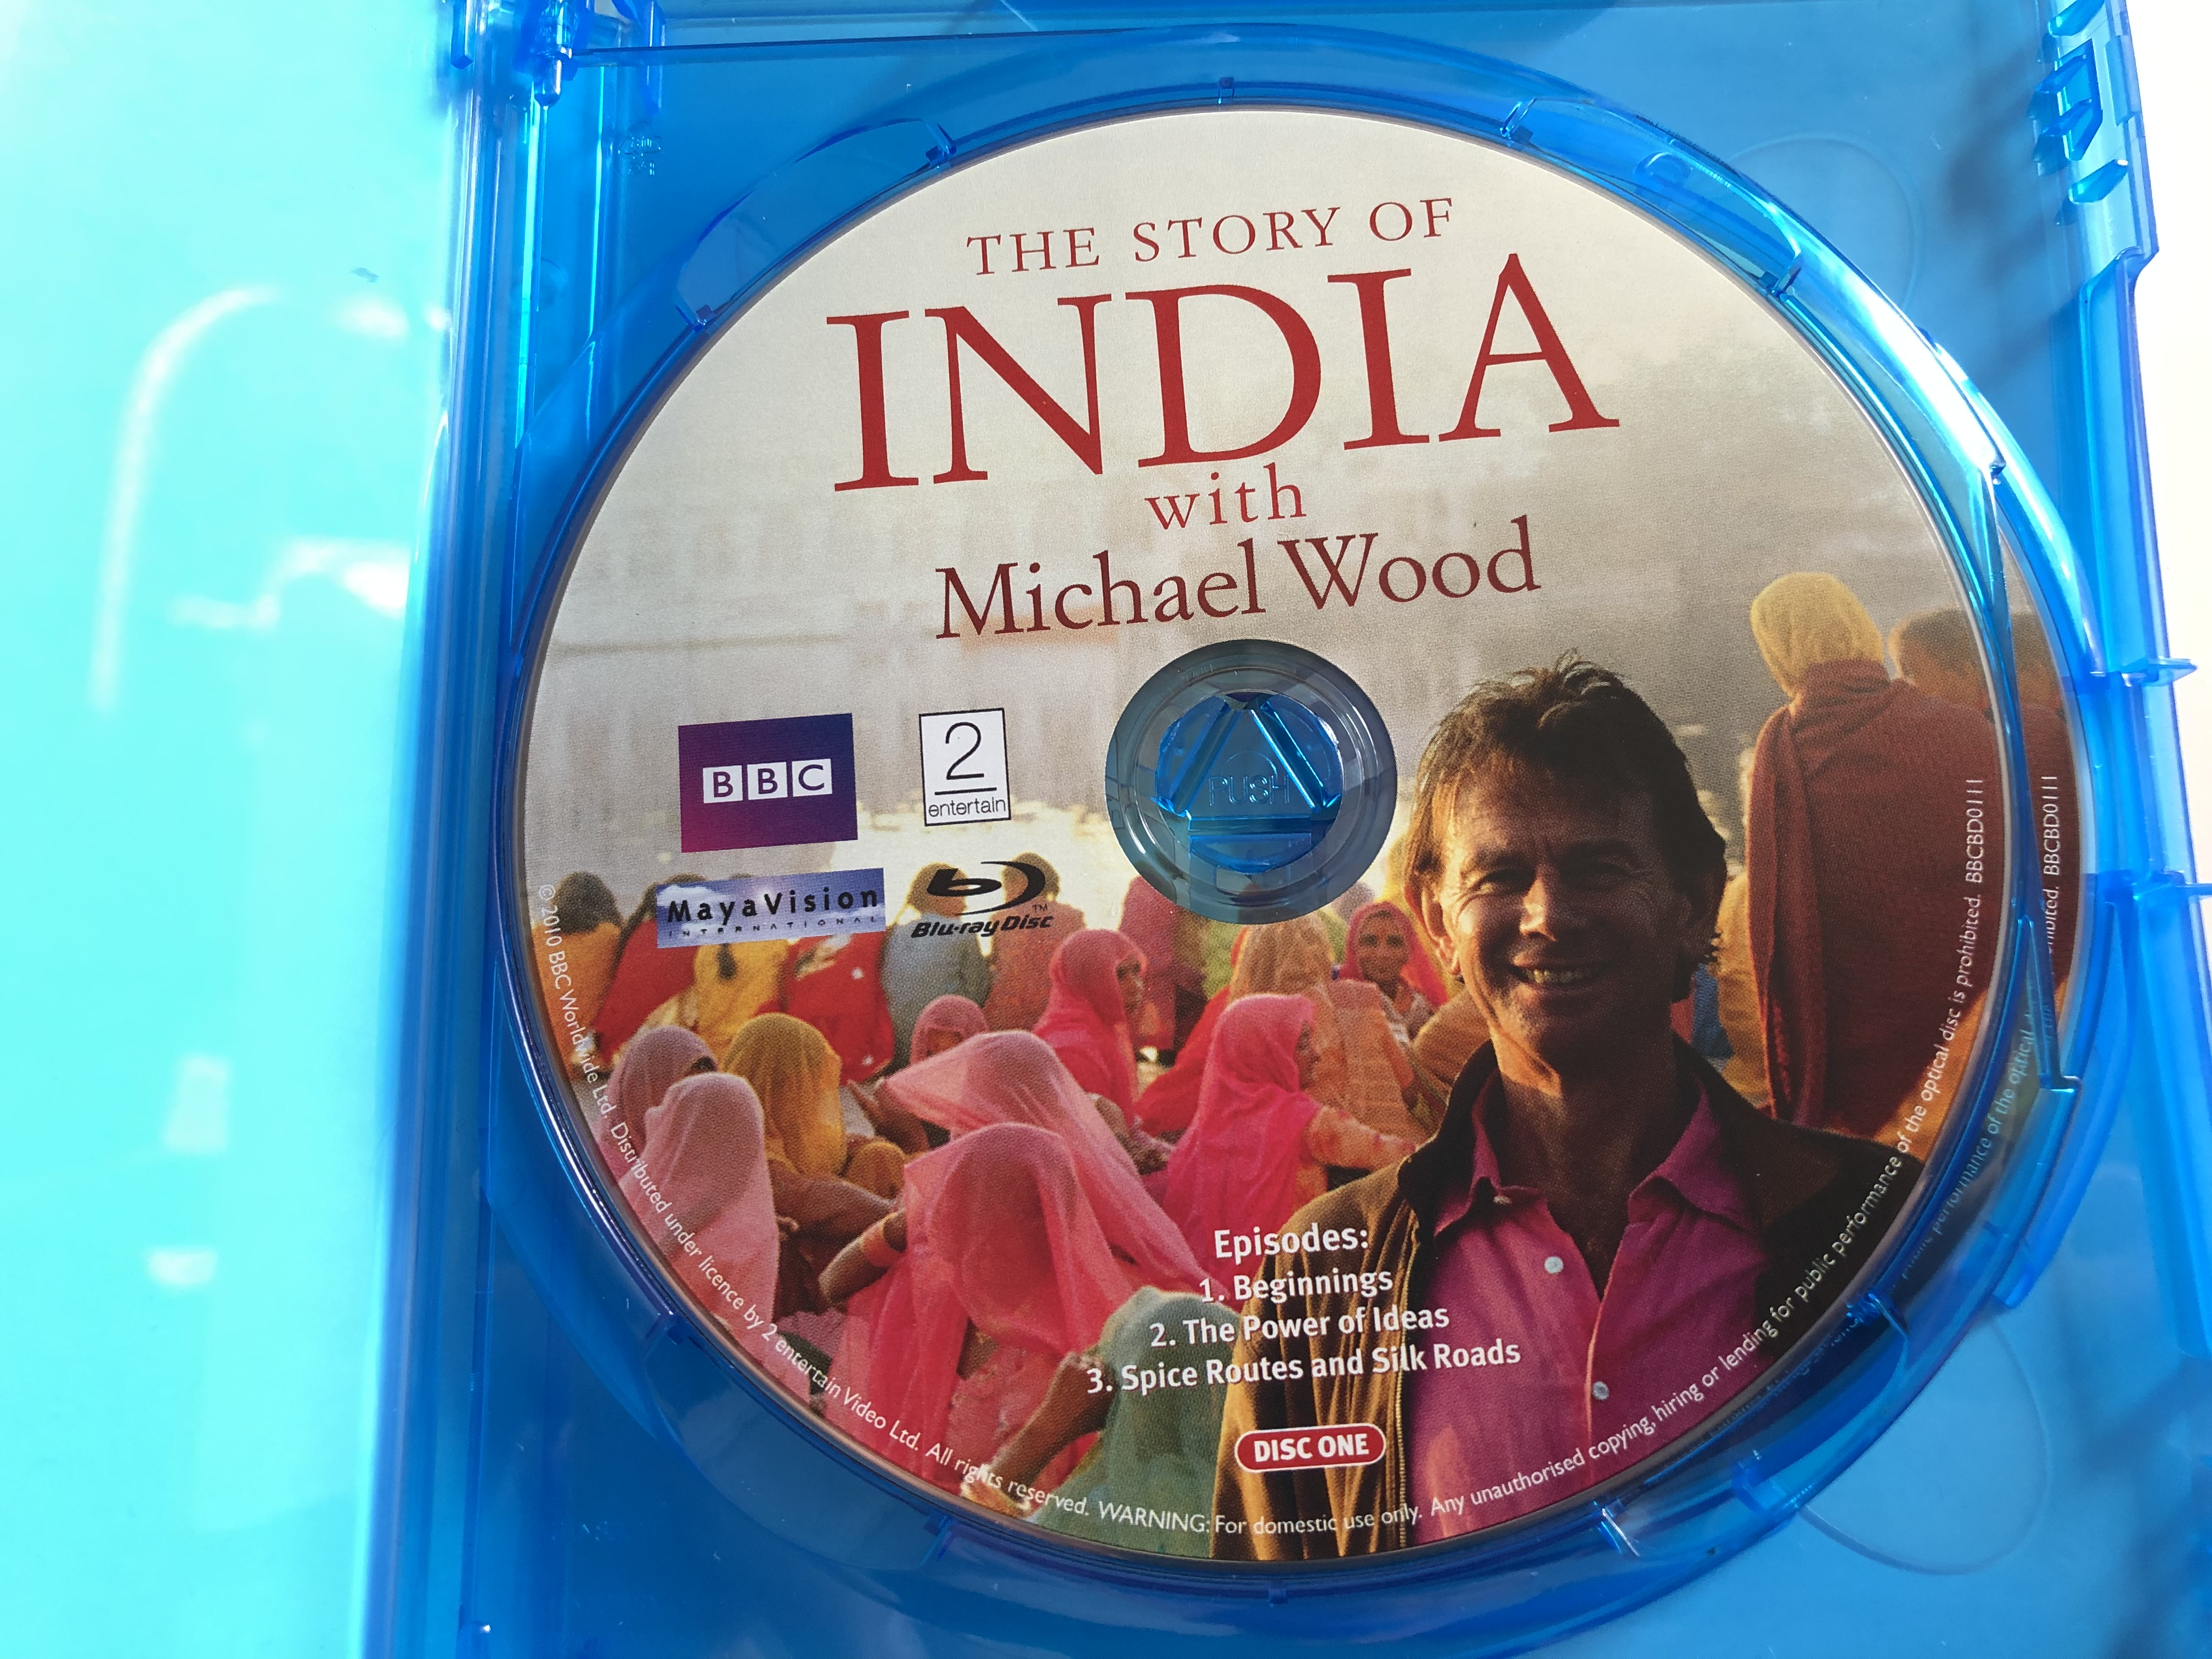 the-story-of-india-with-michael-wood-bluray-a-visual-feast-packed-with-extraordinary-information-bbc-2-disc-set-2-.jpg